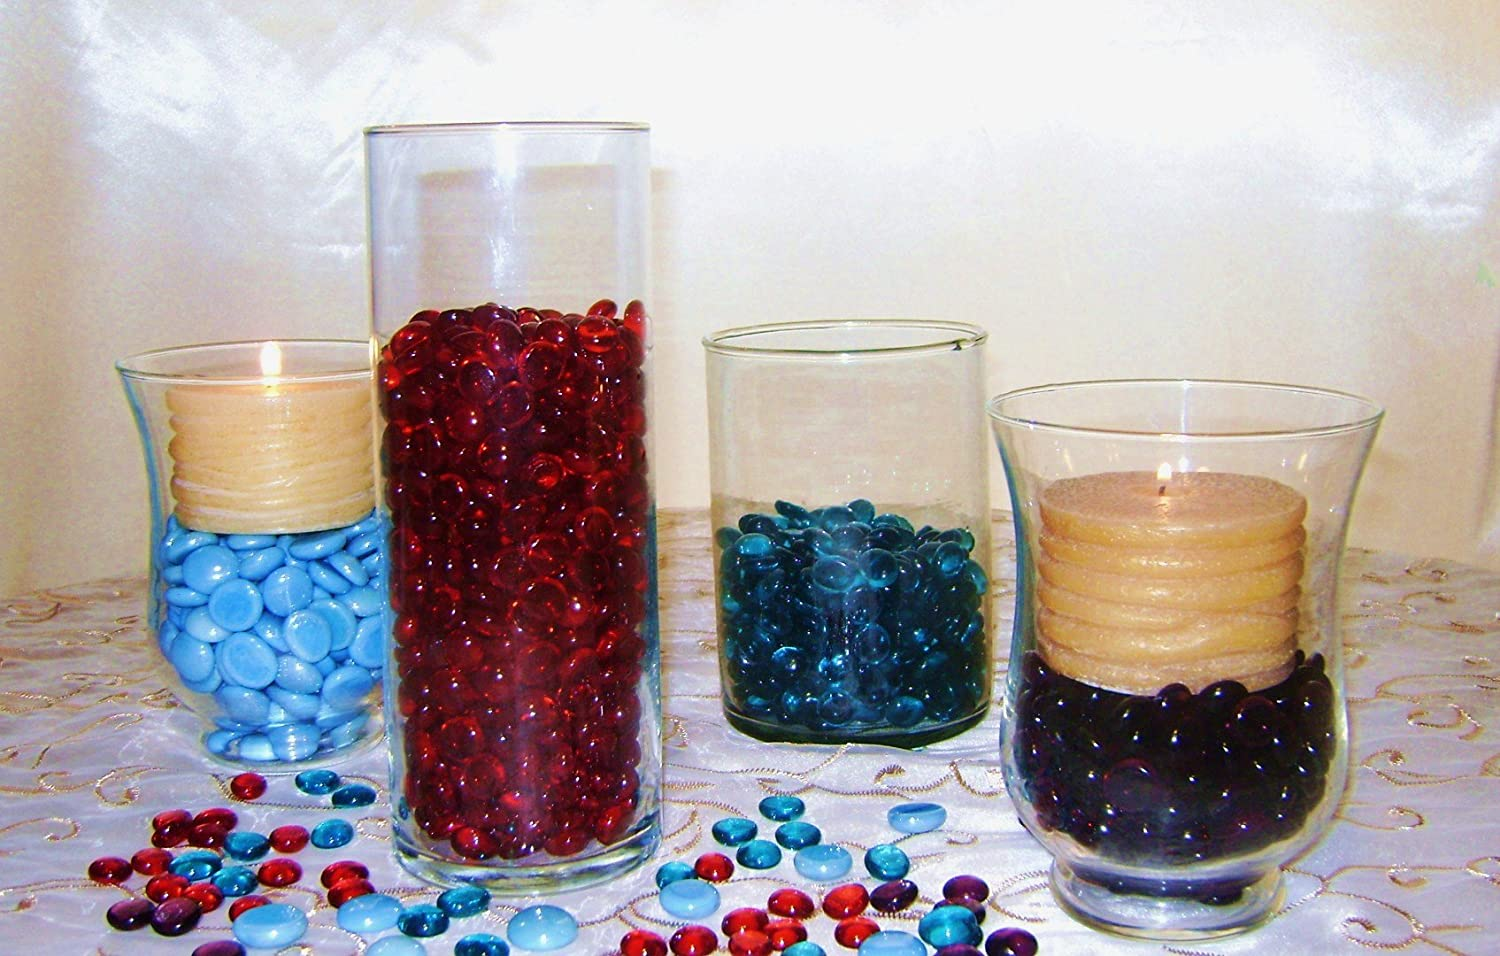 Amazon creative stuff glass 1 lb scarlet red glass gems amazon creative stuff glass 1 lb scarlet red glass gems vase fillers 15 17mm approx 58 pet supplies reviewsmspy